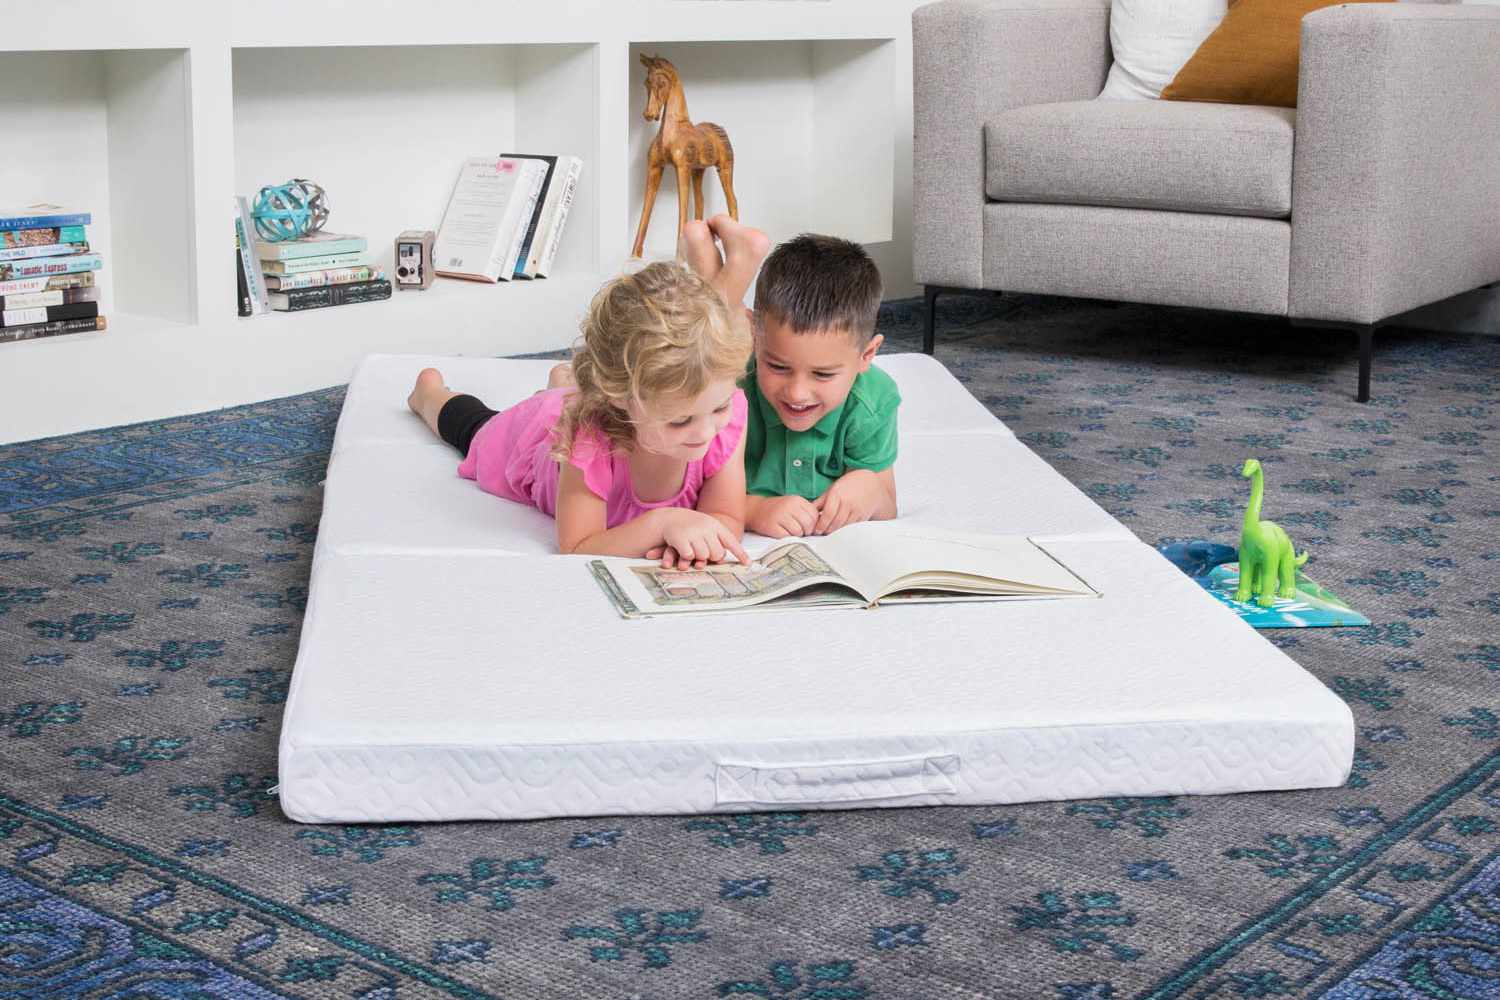 the beds comfortably comforter bed our for with sleep on how current to floor montessori sageness floorbed twins setup watermark